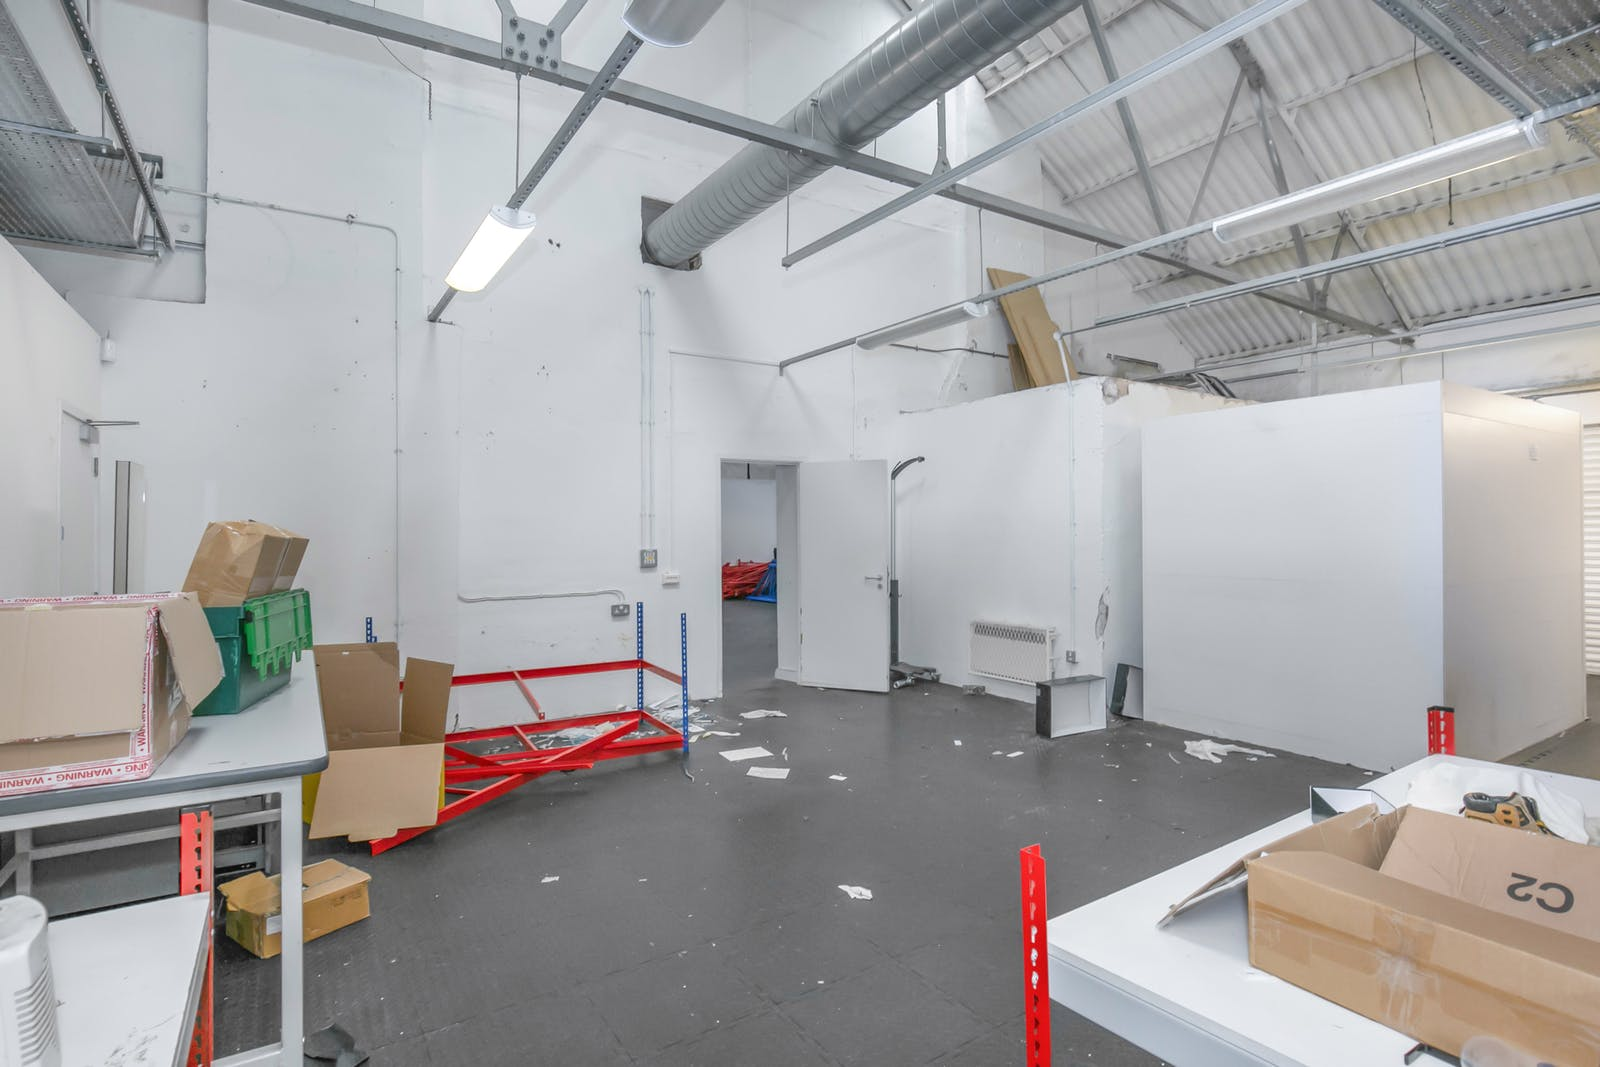 7-9 Chatham Place, London, Office / Industrial / Trade Counter / Retail / Showroom / Leisure / D2 (Assembly and Leisure) To Let - S25C7997.jpg